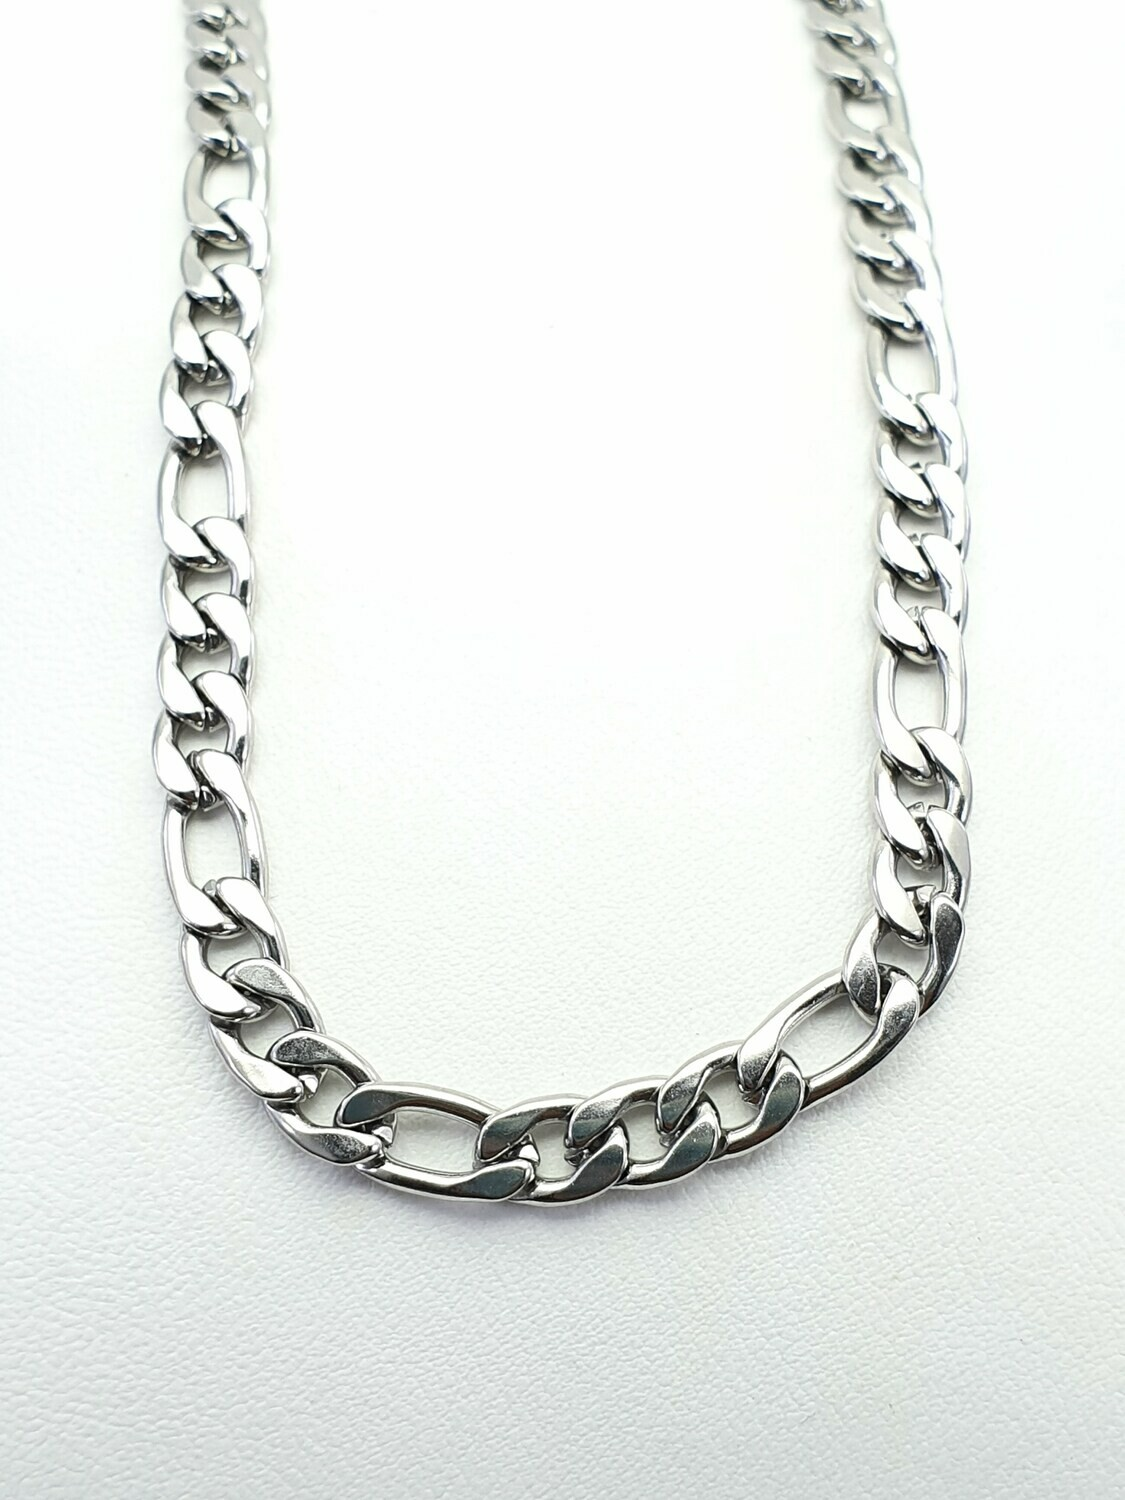 Stainless steel chain 65cm